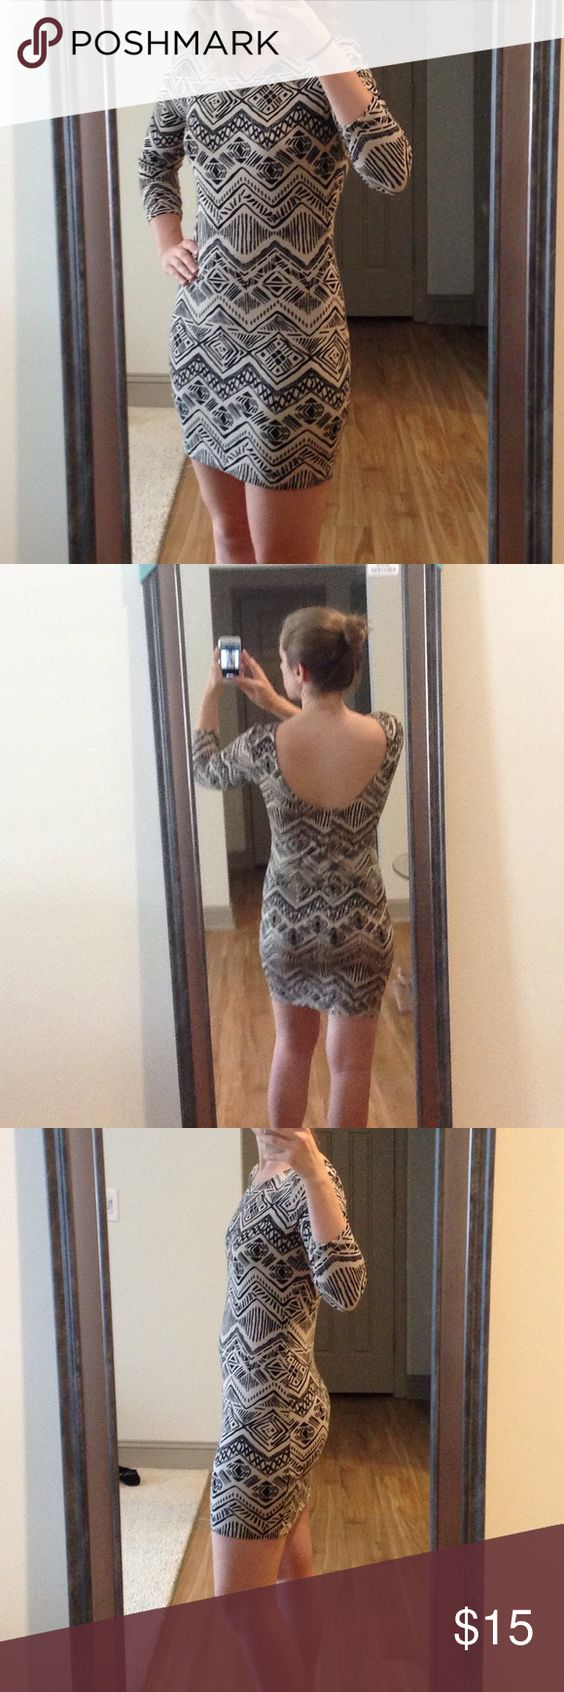 SUMMER SALE ☀️ F21 tribal print dress Fun and flirty tribal print bodycon dress from Forever 21. Tag says L, but I am a size 4 and it fits great. Super comfy jersey material, perfect for a night out! Material is 95% rayon, 5% spandex. Forever 21 Dresses Mini